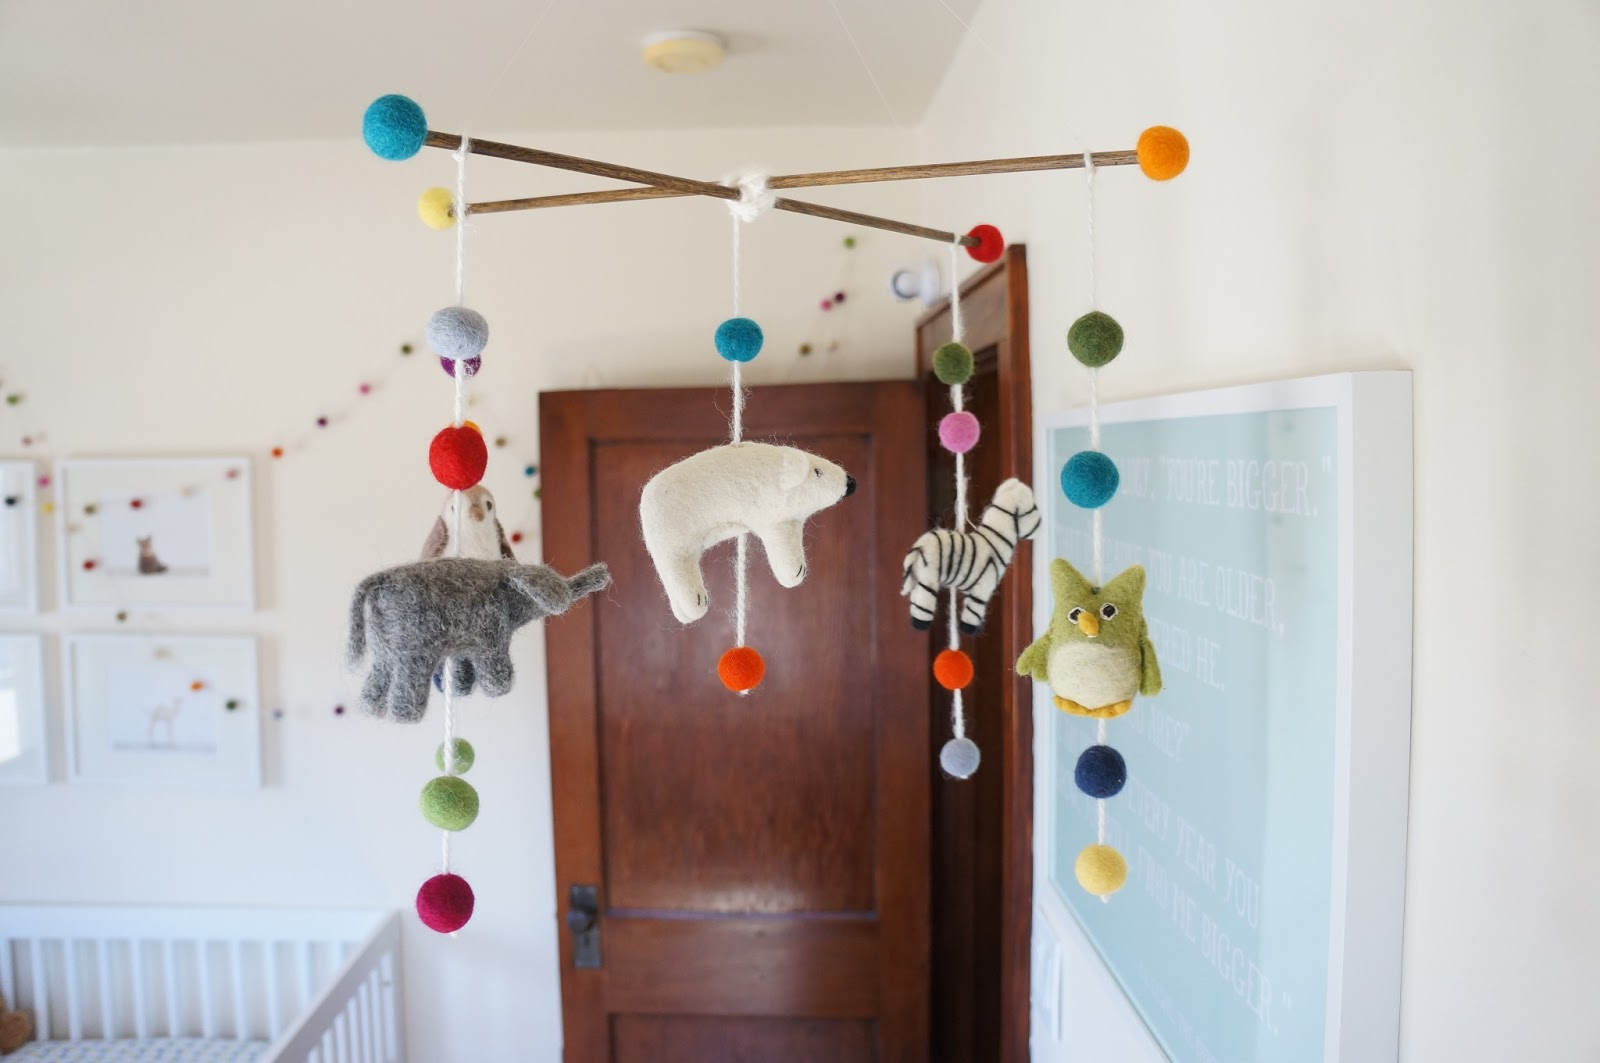 DIY Felt Animal and Felt Ball Mobile